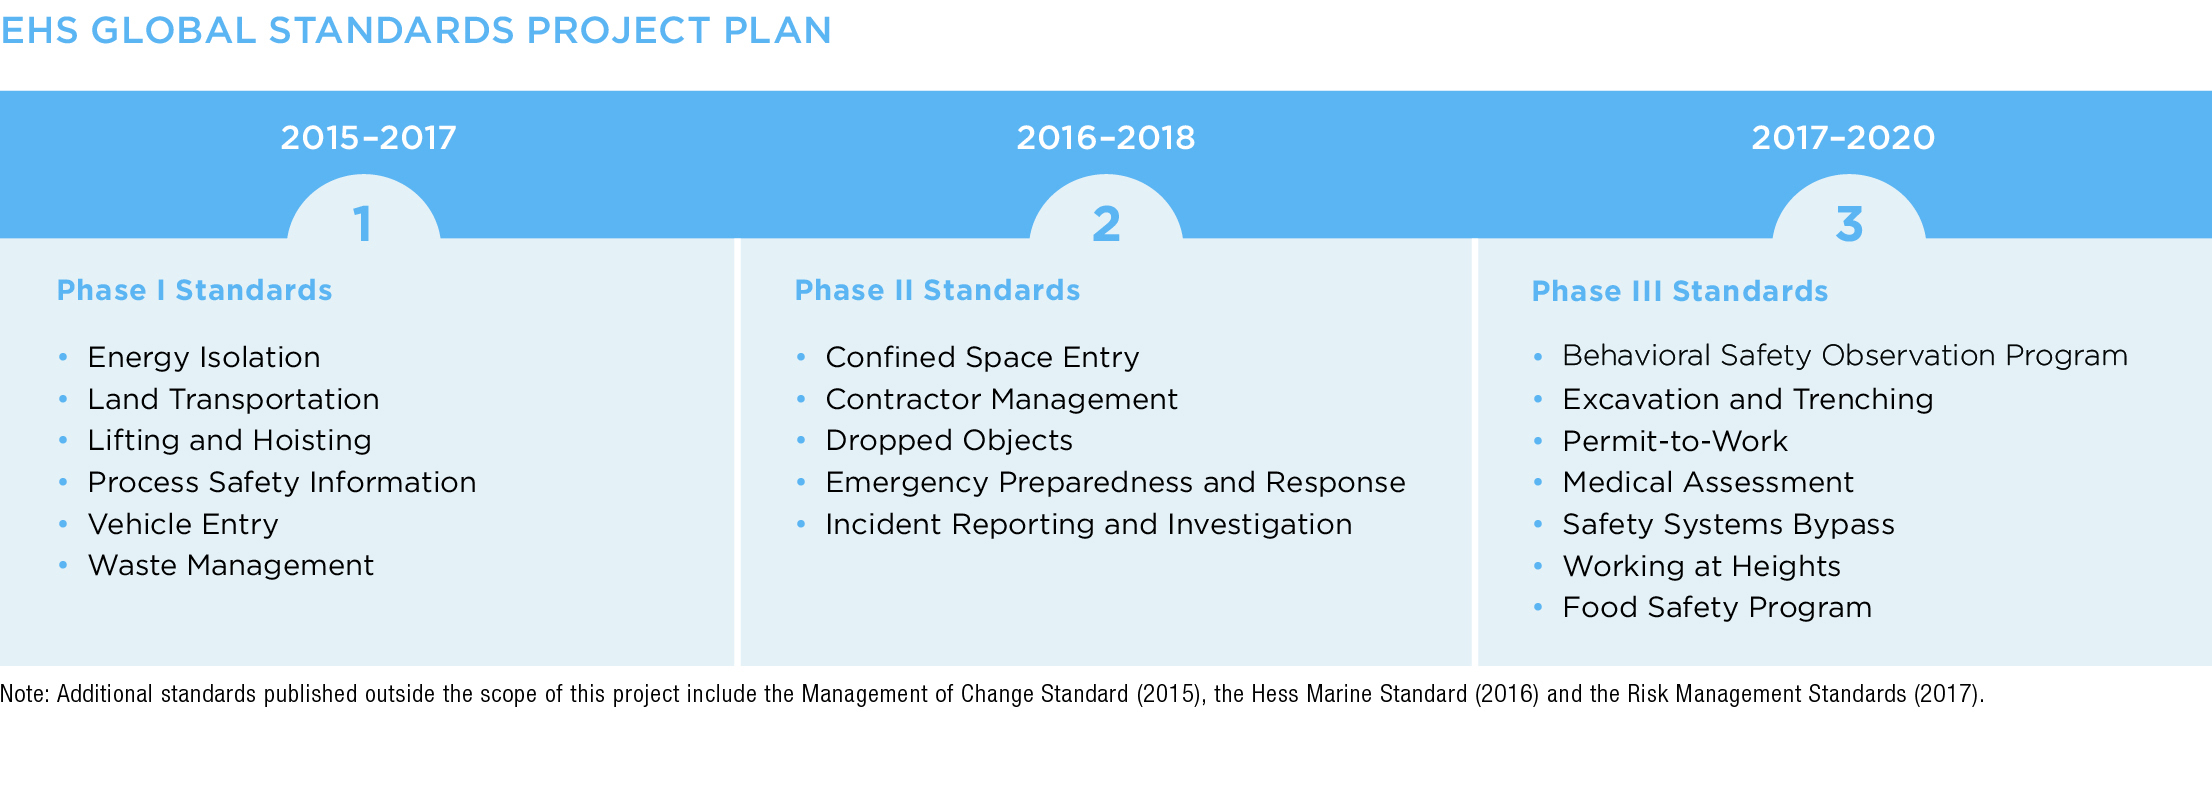 EHS Global Standards Project Plan